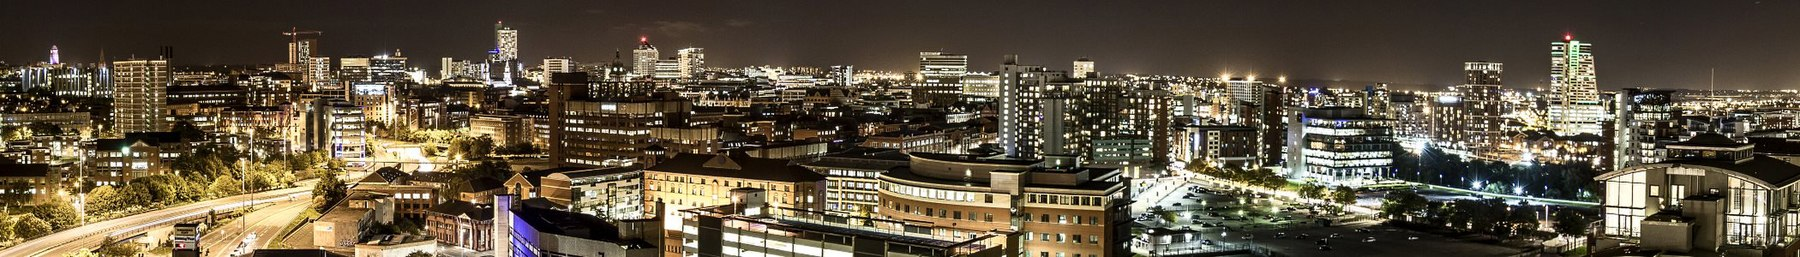 The night lights of Leeds, the largest city of West Yorkshire